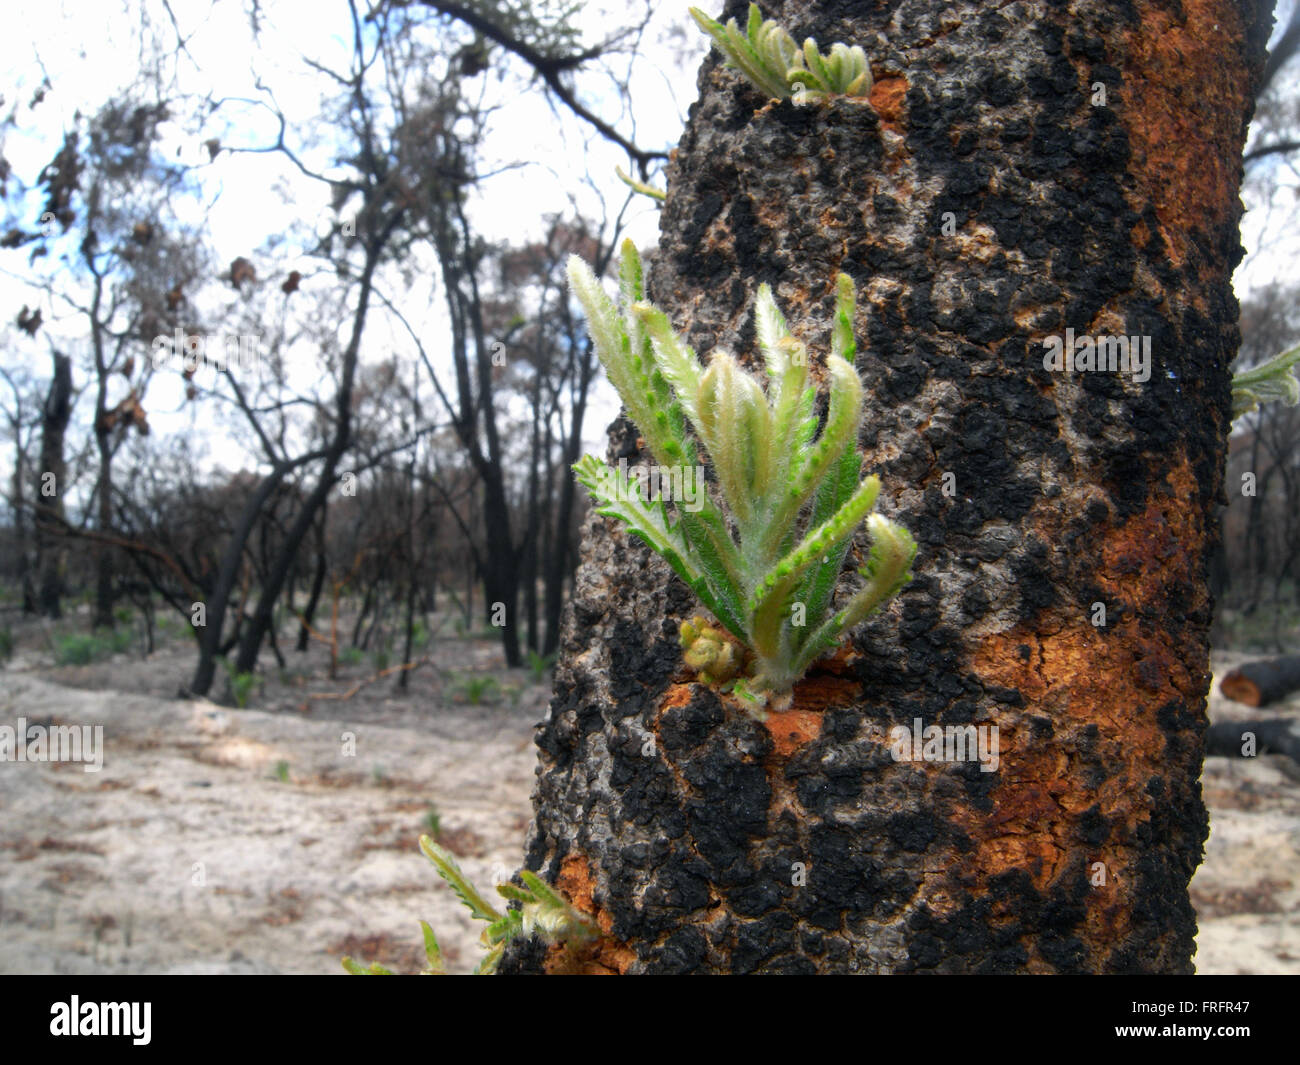 Preston Beach, southwest Western Australia - 22 March 2016 - Tiny new shoots emerging from the blackened trunk of Stock Photo